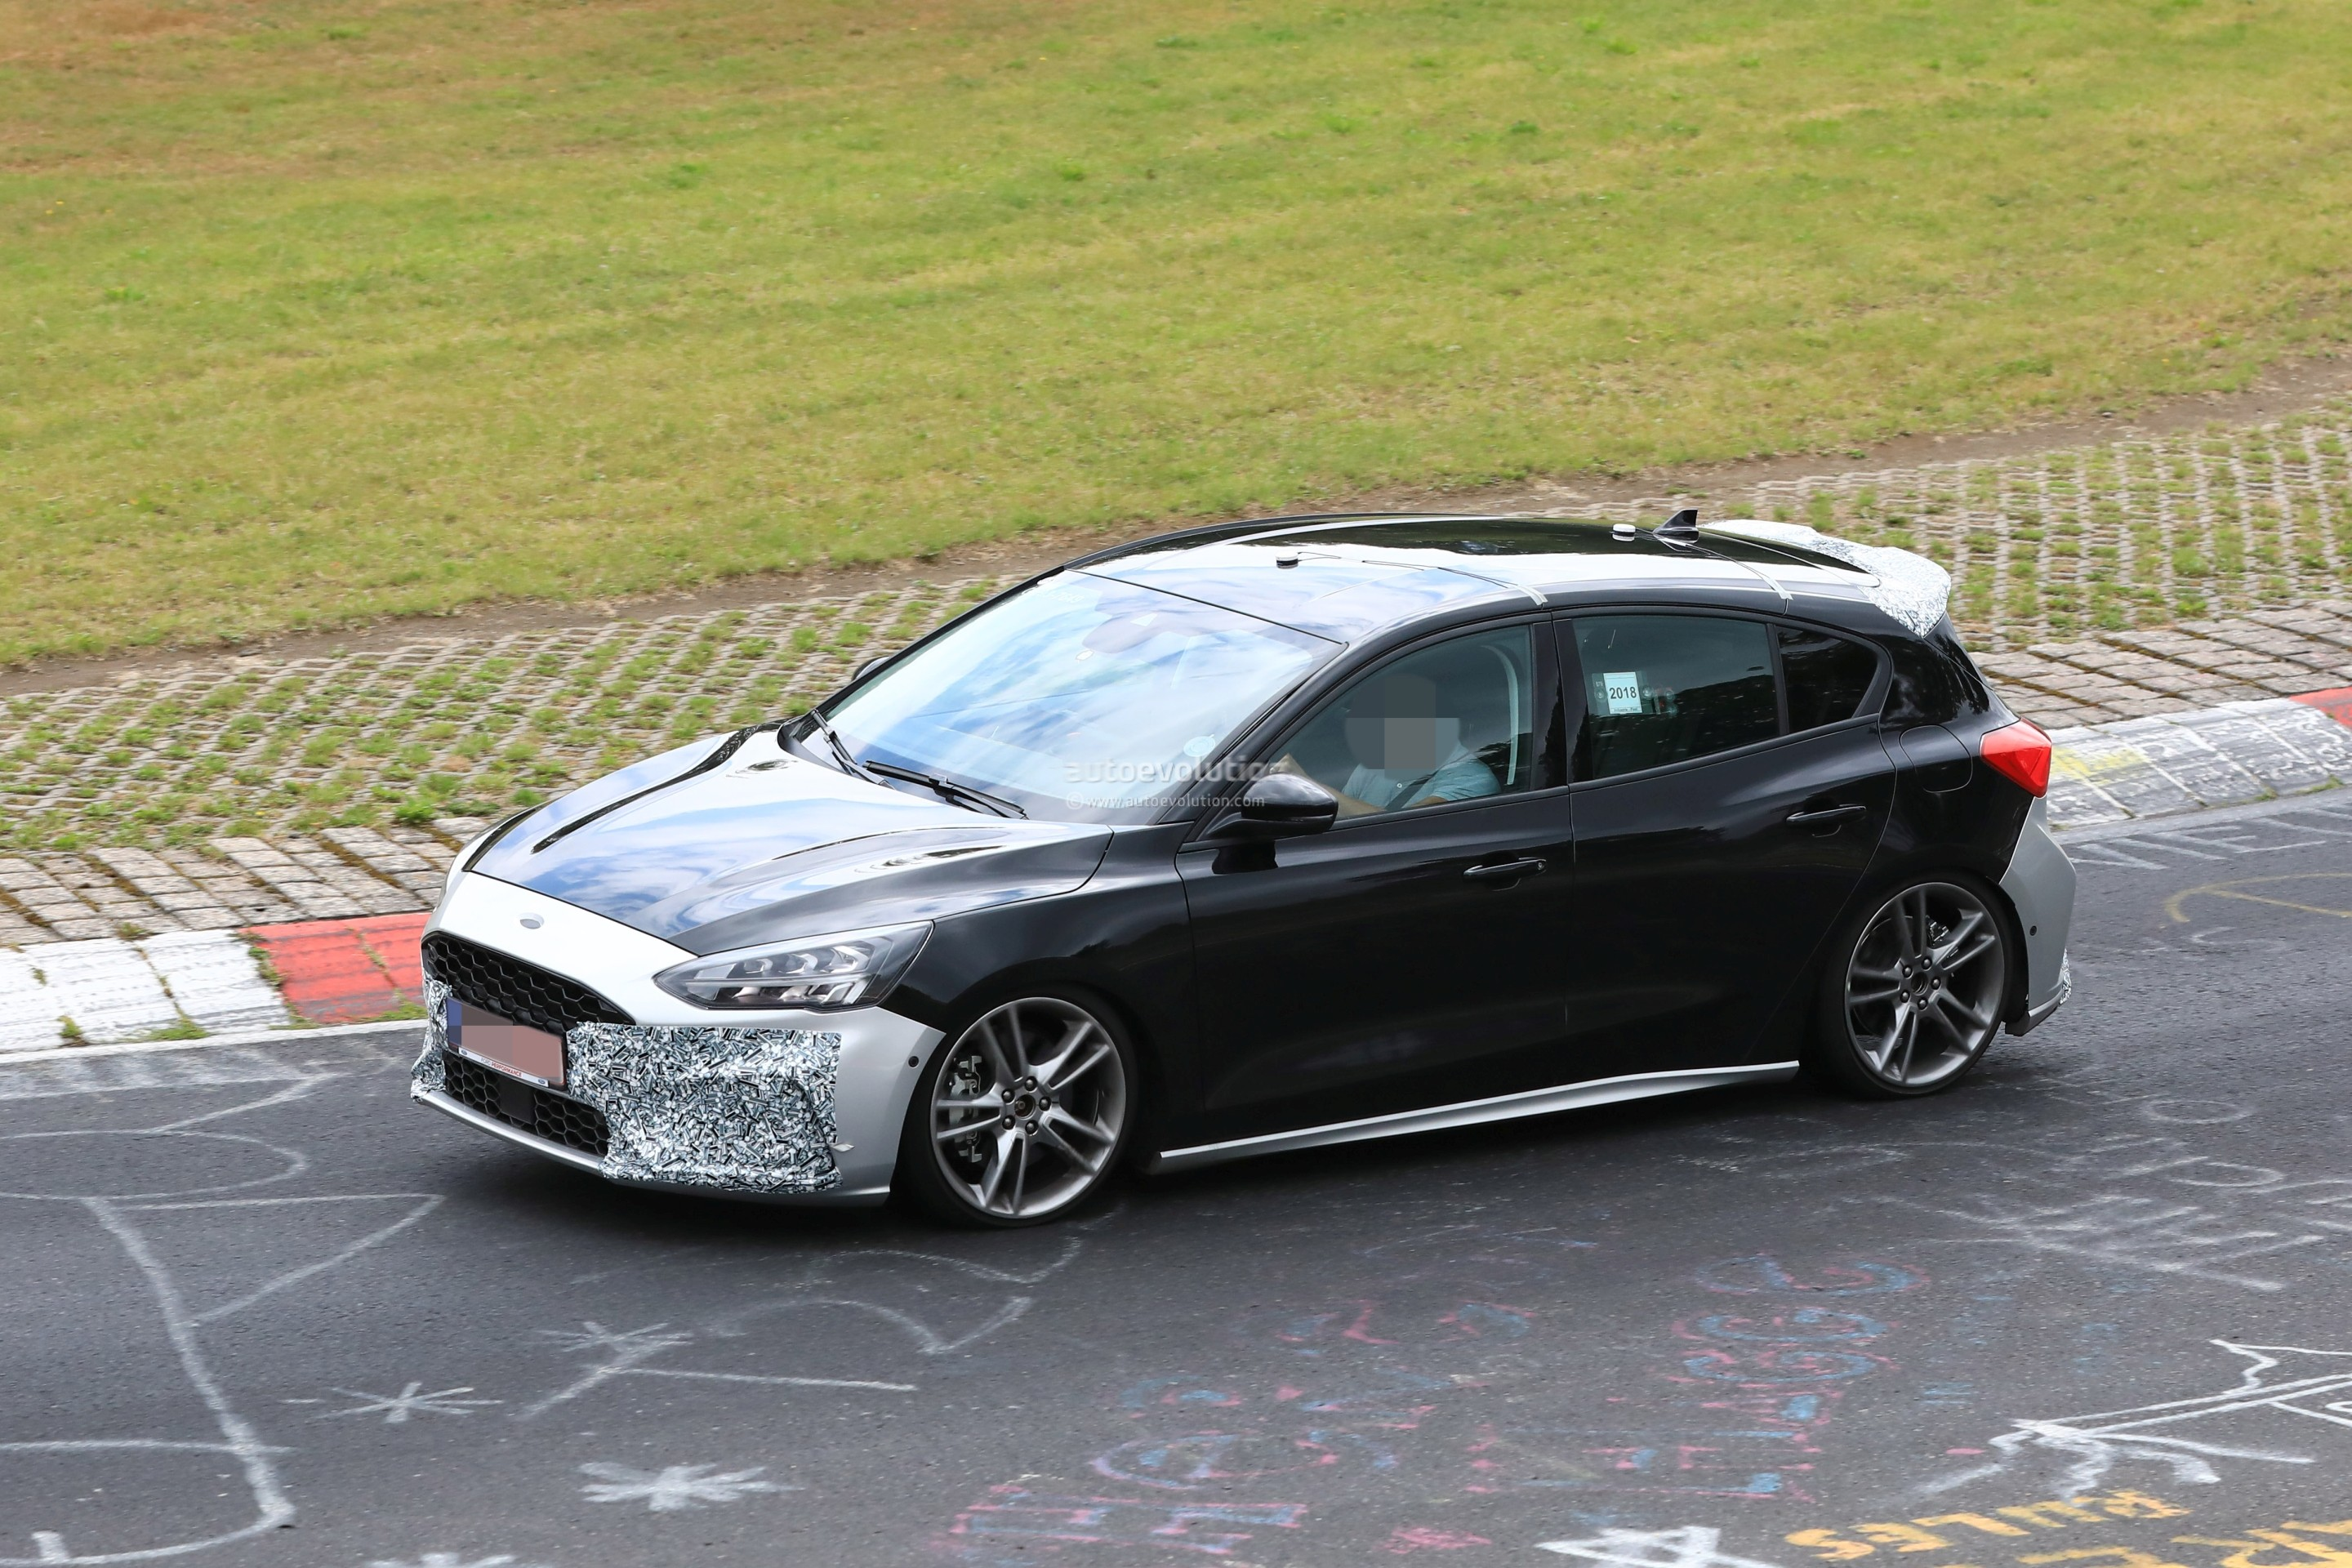 2018 - [Ford] Focus IV - Page 13 New-ford-focus-st-hits-nurburgring-will-offer-20l-turbo-and-automatic_4